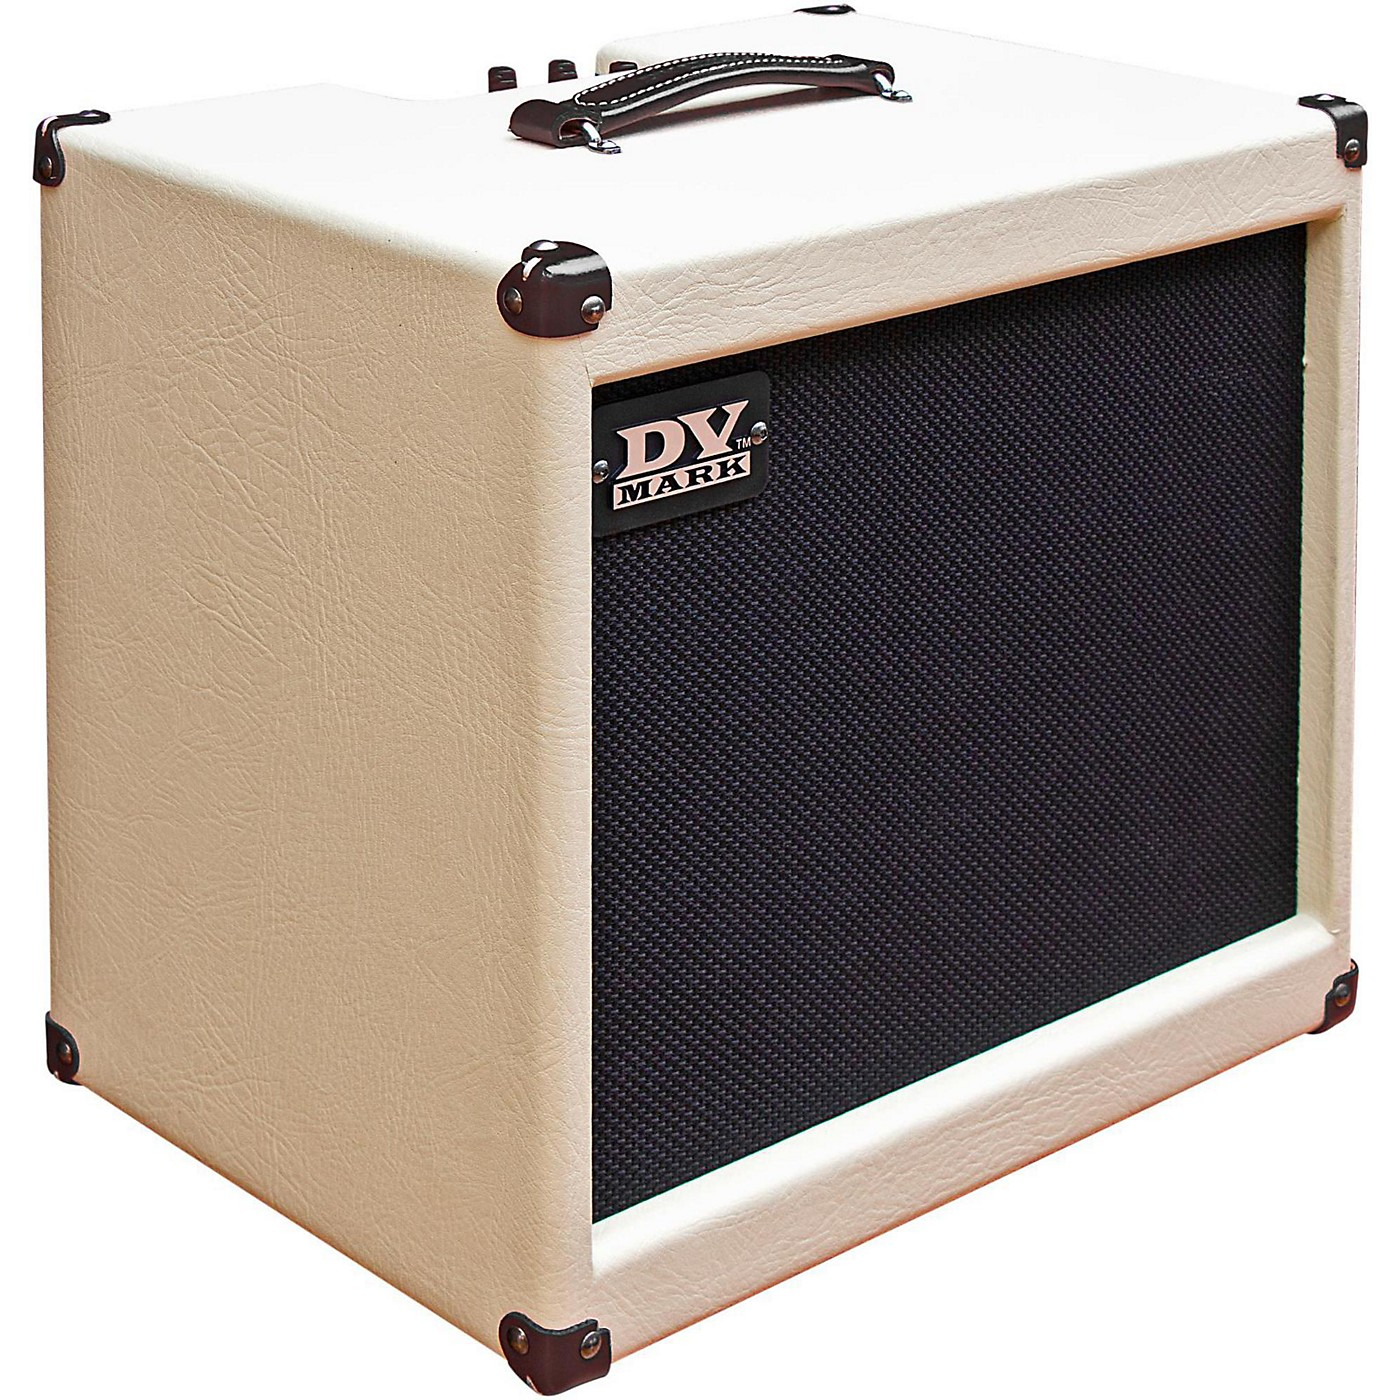 DV Mark DV Jazz 12 45 Watt 1x12 Jazz Combo thumbnail